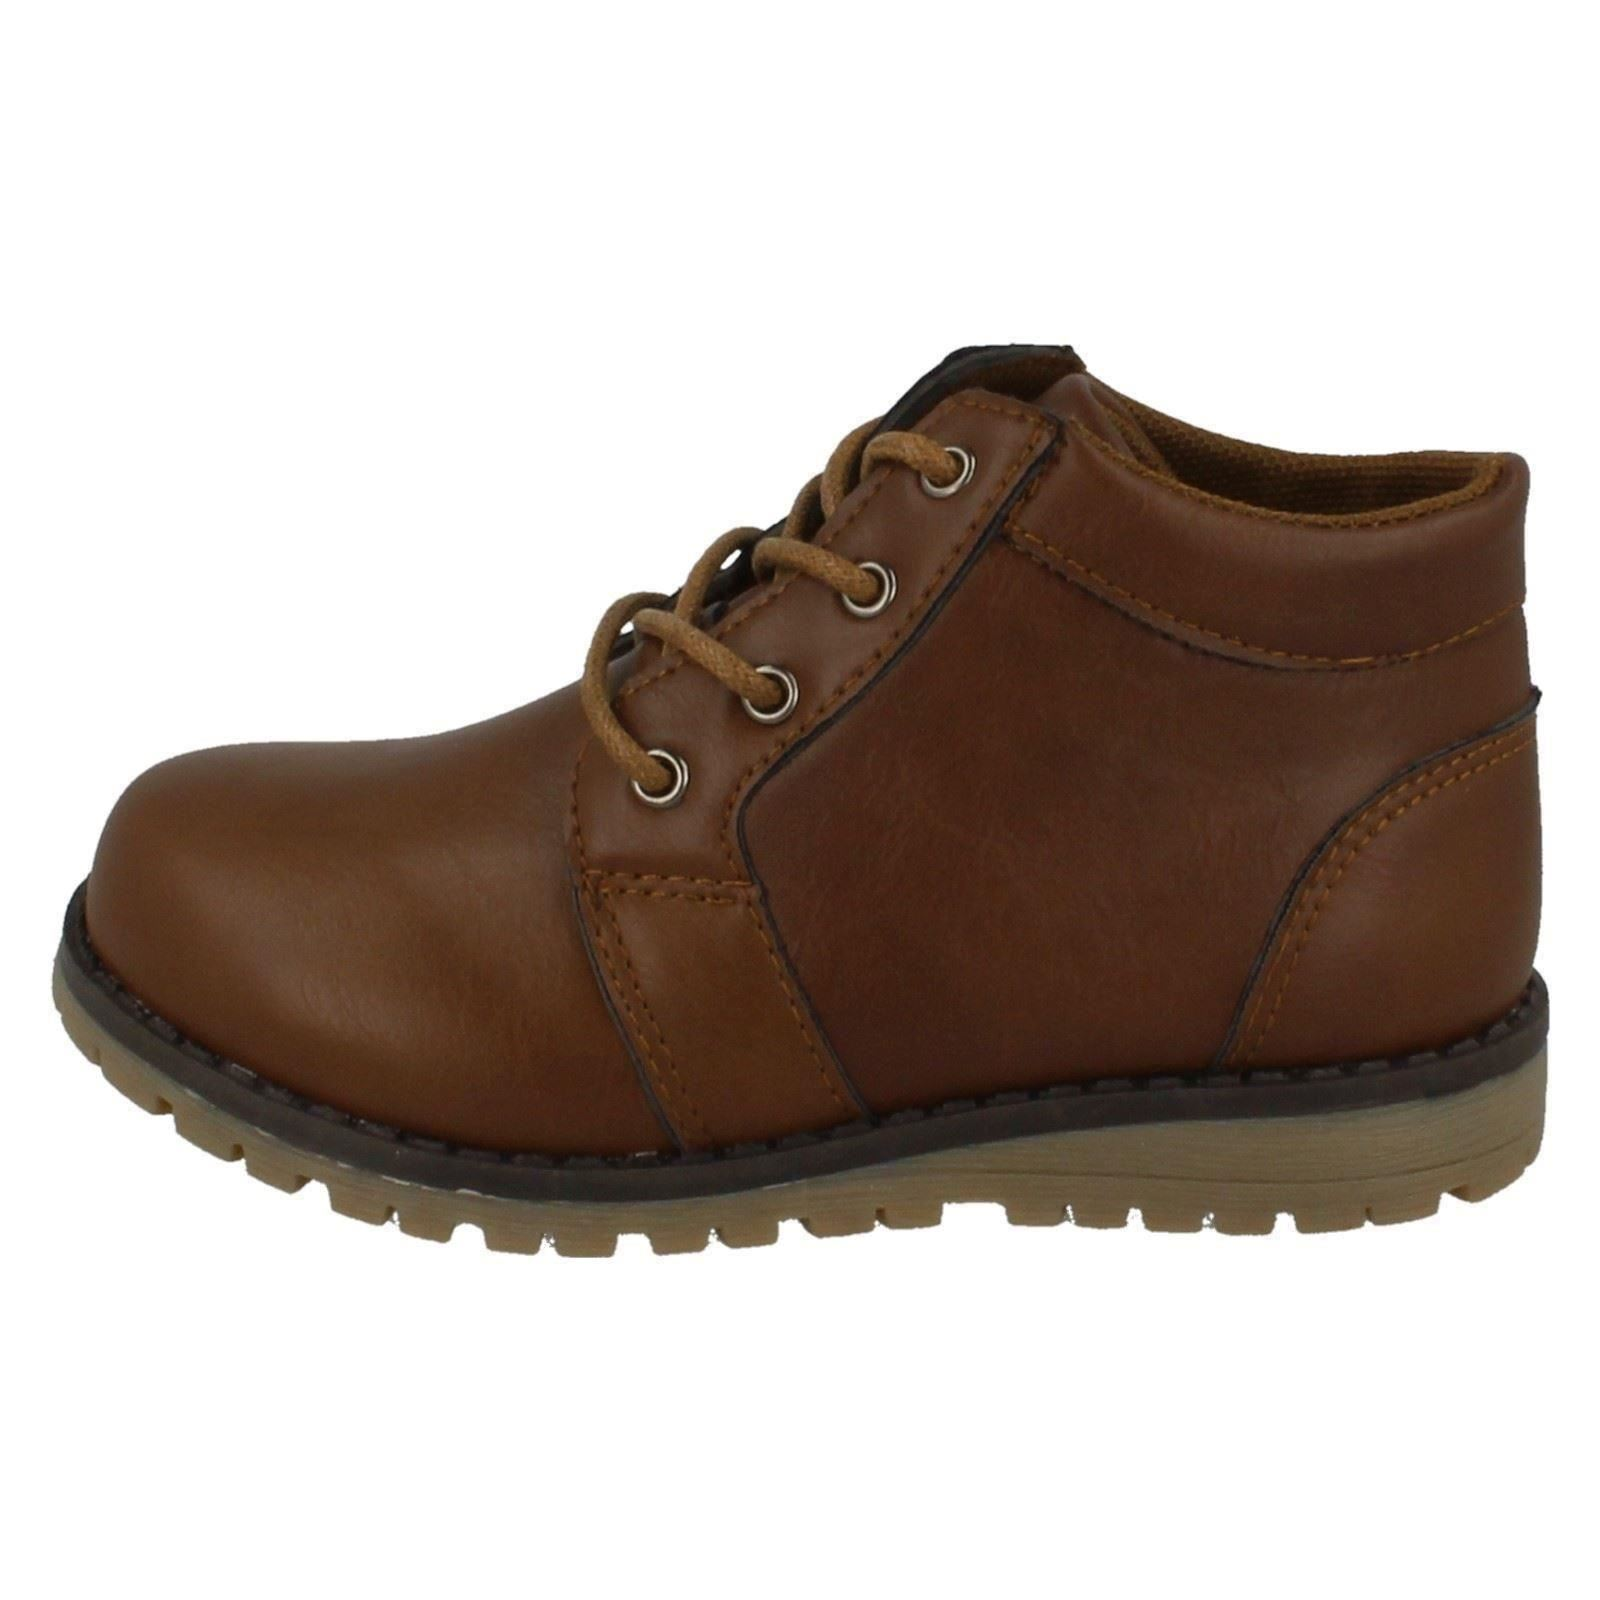 Boys JCDees Boots The Style -N2042